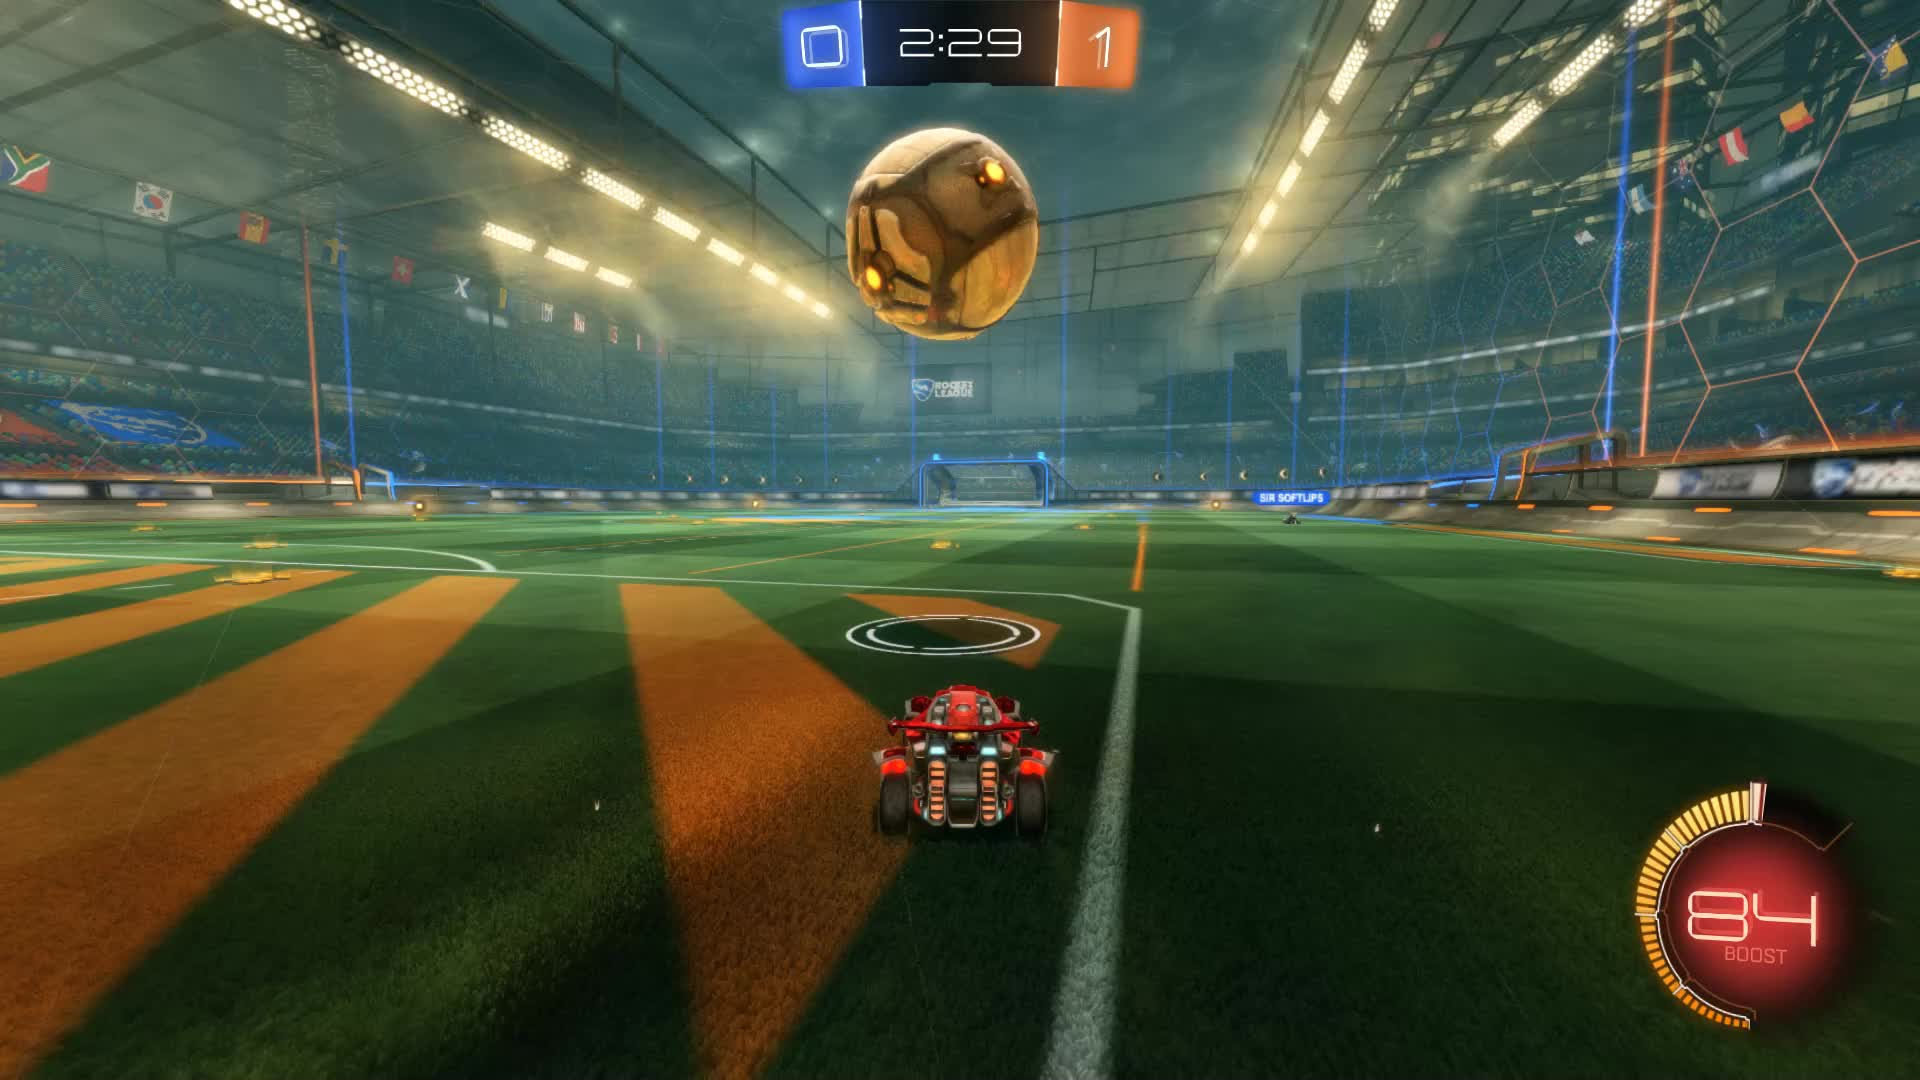 Gif Your Game, GifYourGame, Rocket League, RocketLeague, WolvesBehindMe, Goal 2: WolvesBehindMe GIFs